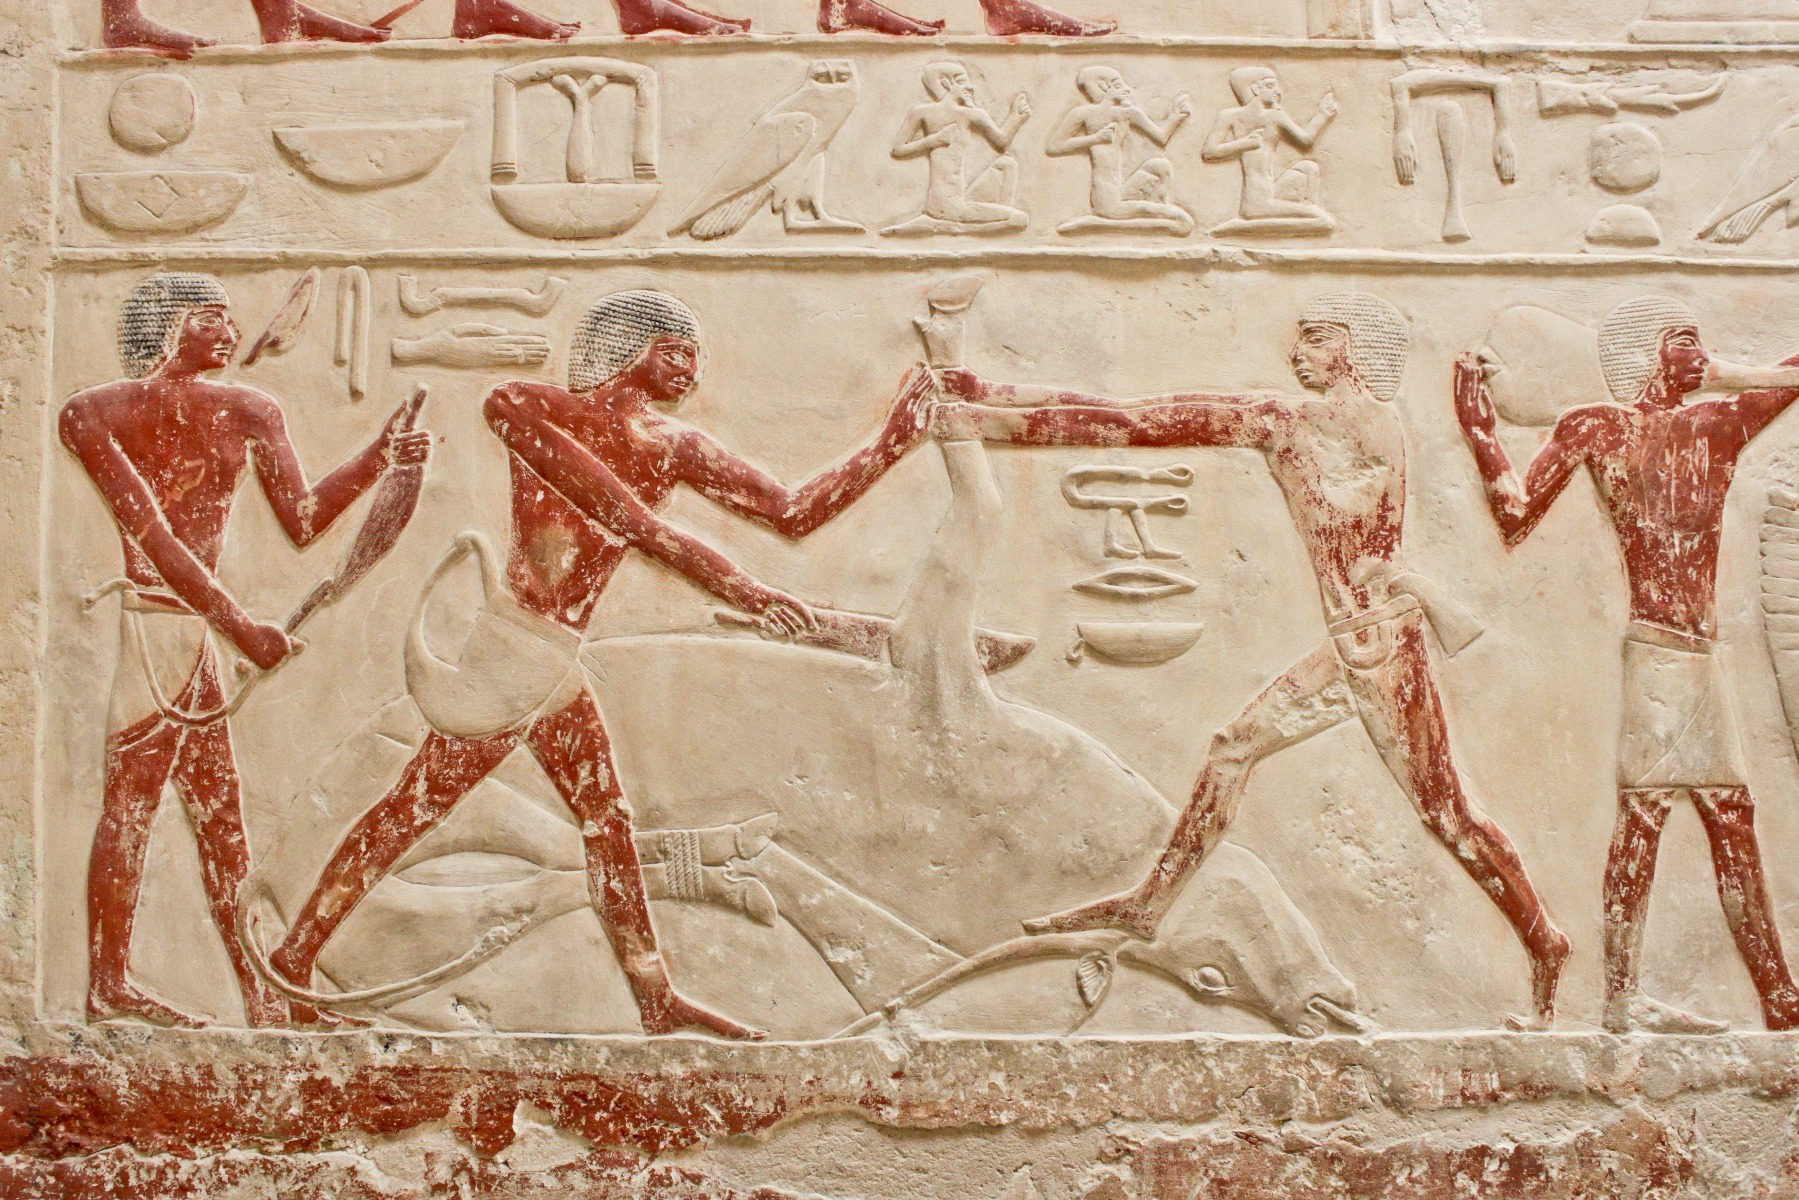 Find out about the Ancient Egyptian Sports and Games, Read now the thrilling facts about Ancient Egypt and share your thoughts via comments